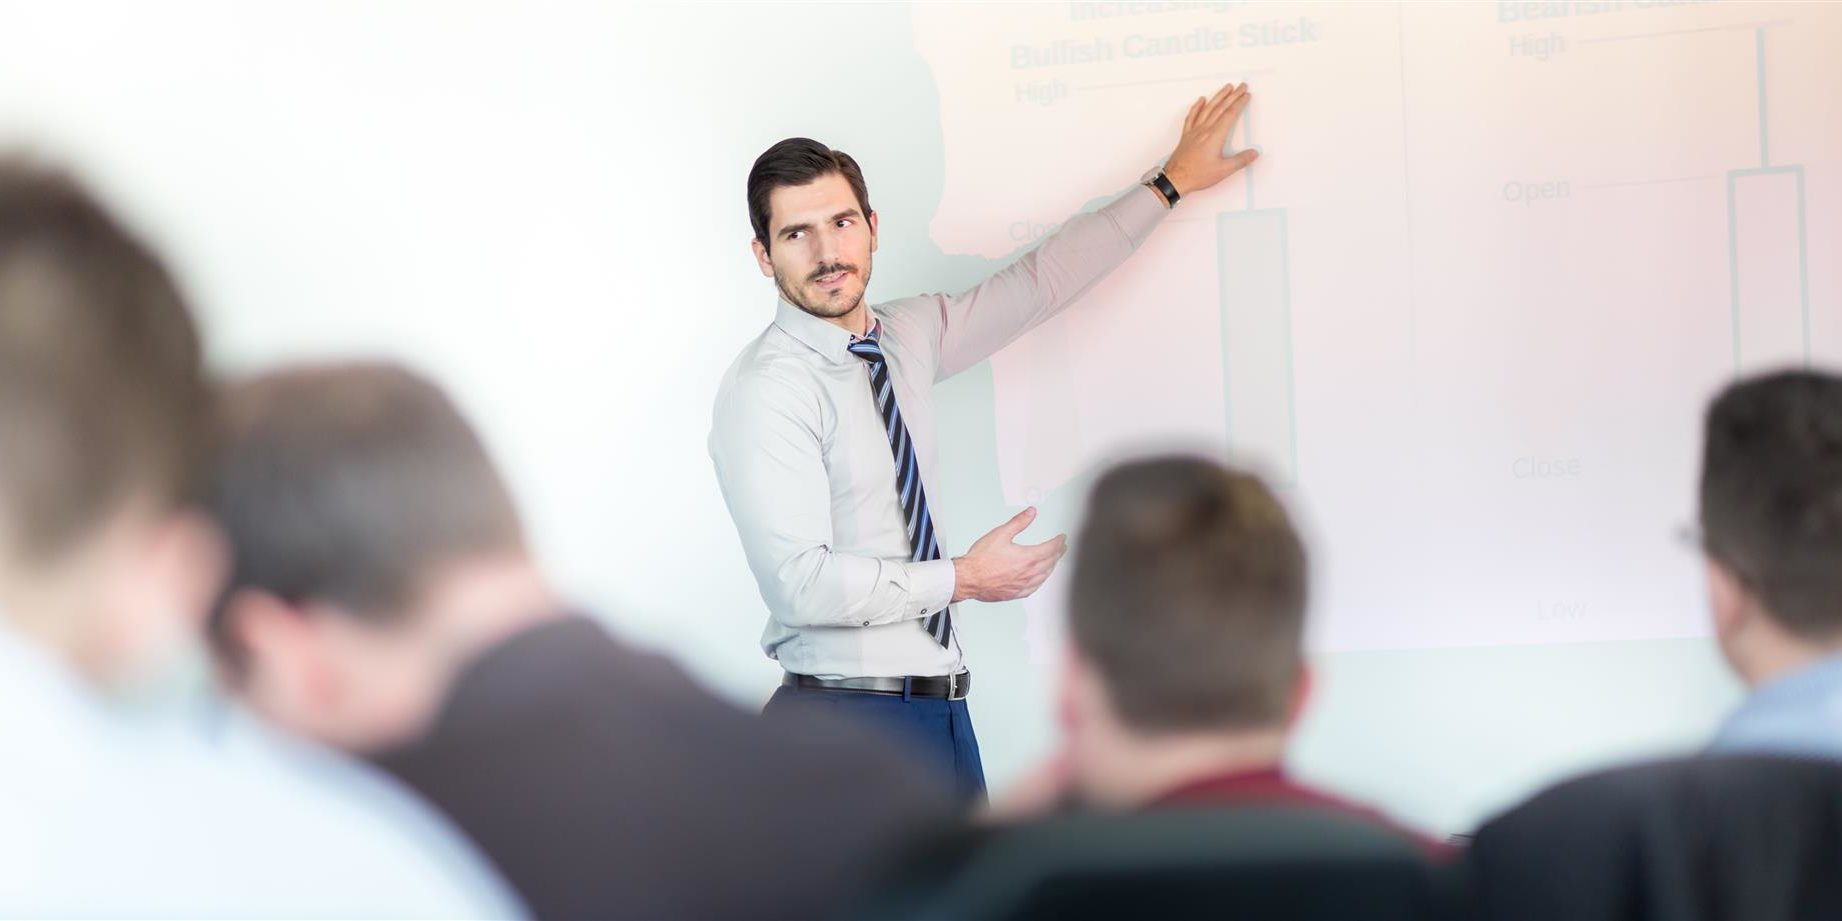 Man giving presentation in front of group of evaluators